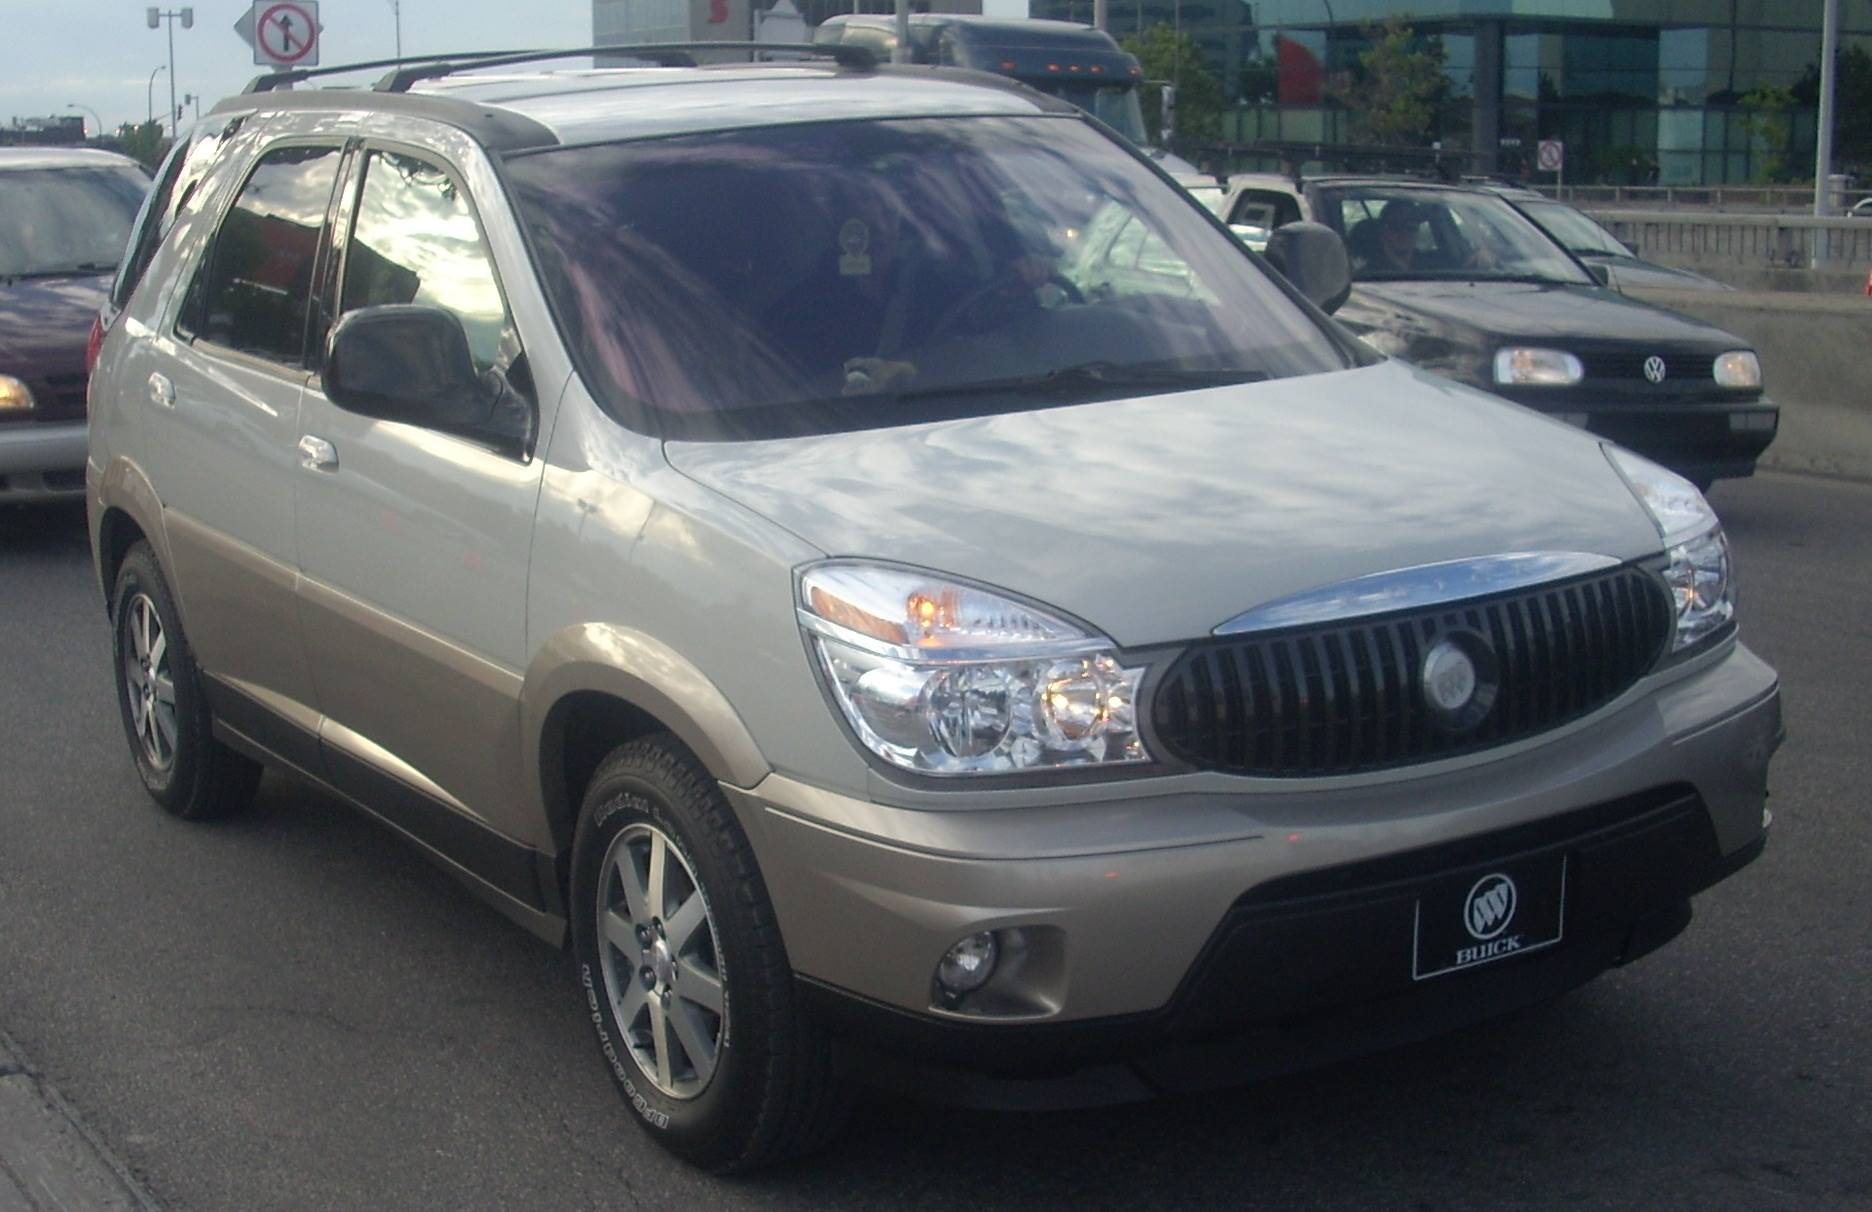 2005 buick rendezvous ultra w 1se all wheel drive 4 spd - Buick rendezvous interior dimensions ...